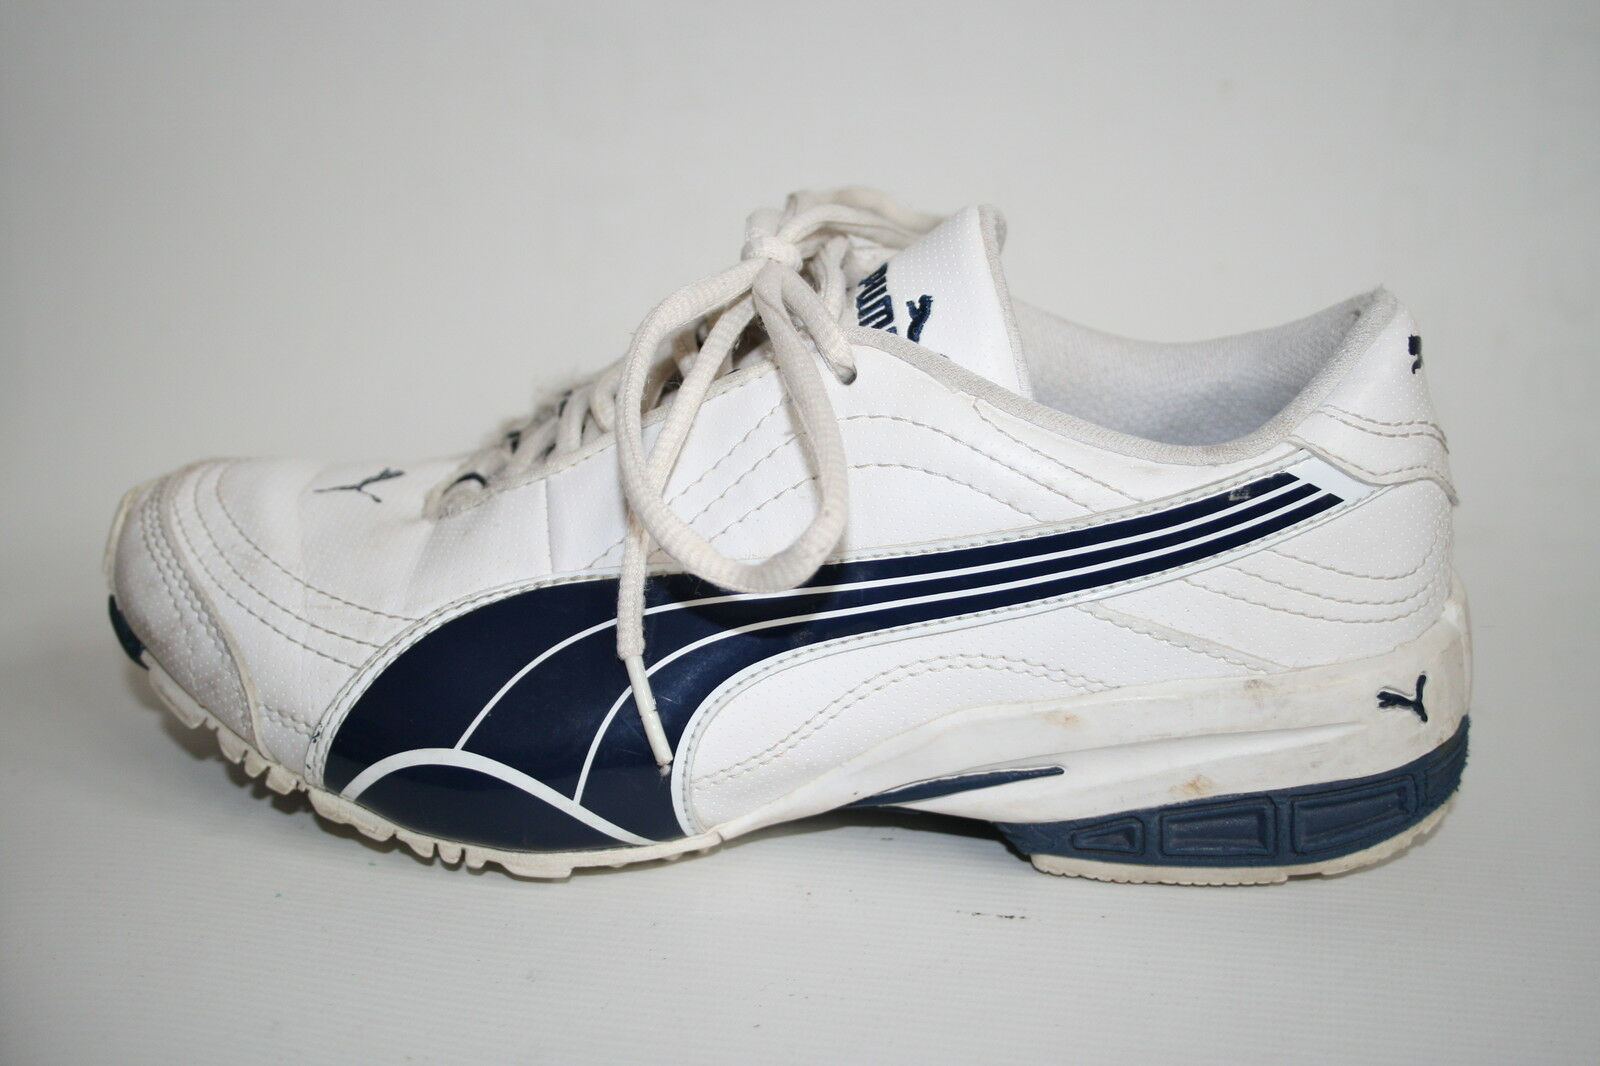 Puma Woman's Girls Shoes Fitness Trainers White Blue Leather Fitness Shoes Running 4 UK 637d7f